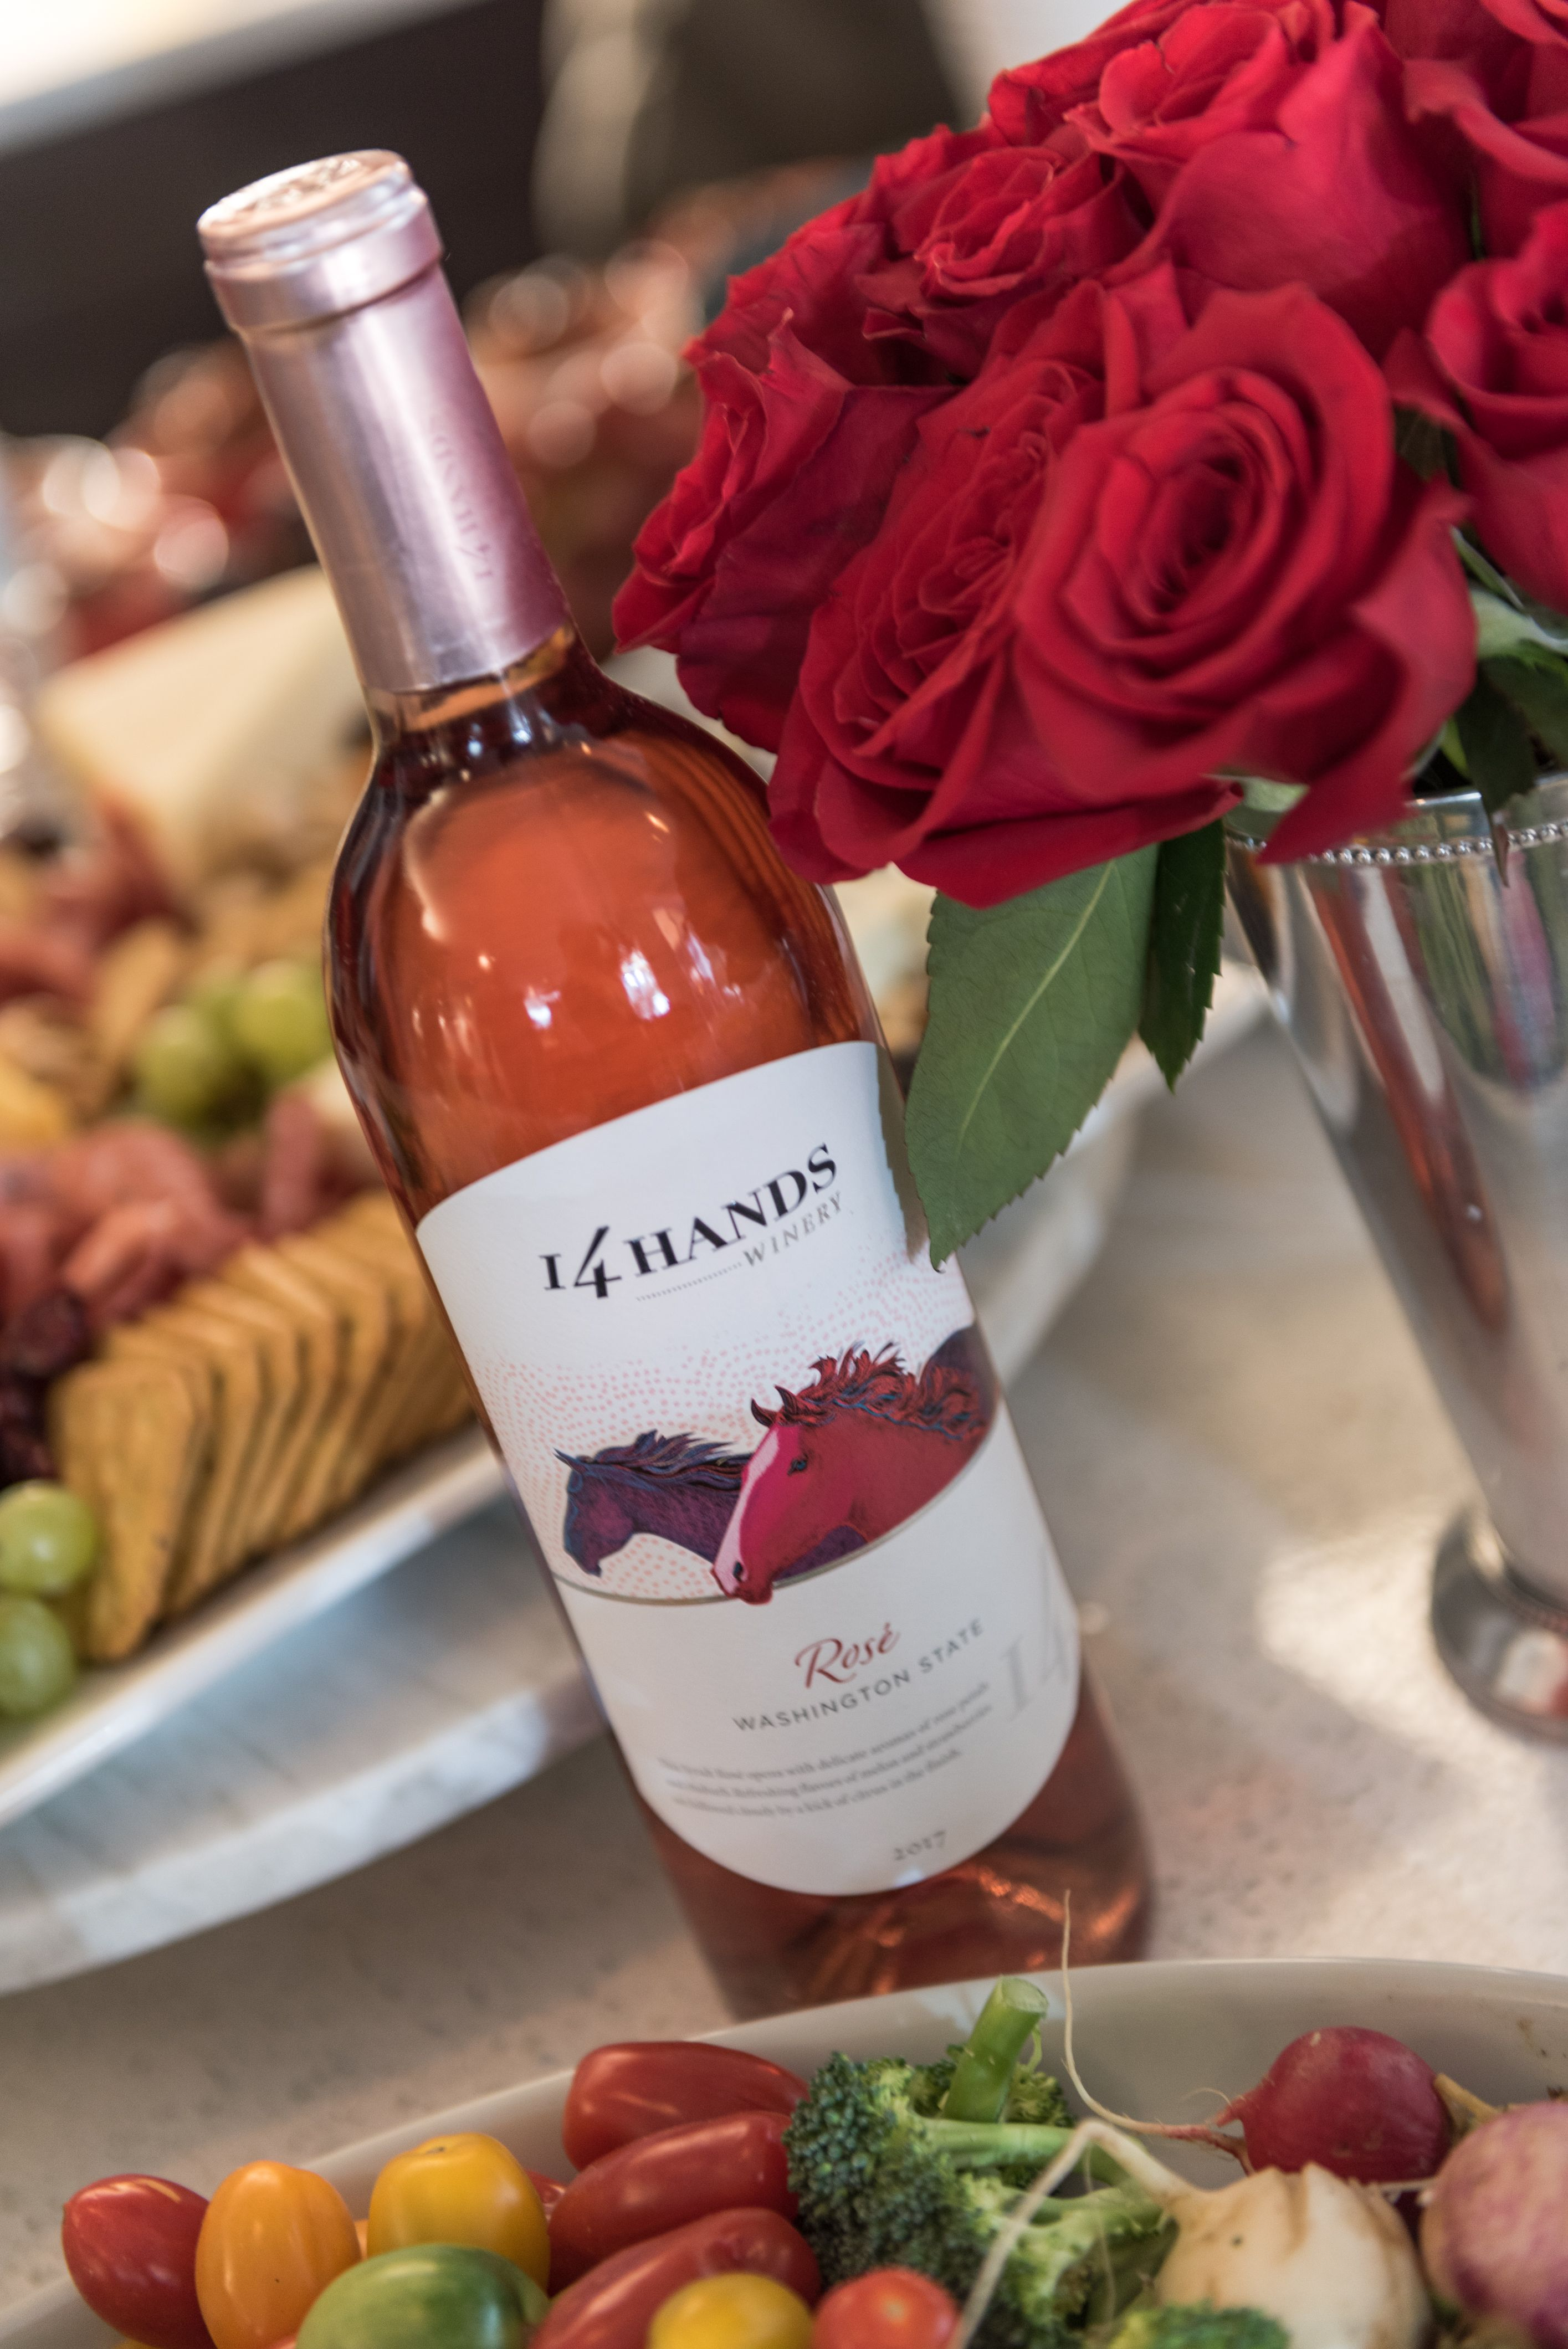 14 Hands Rose Party Wine Rose Wine Recipes Wine Wine Bottle